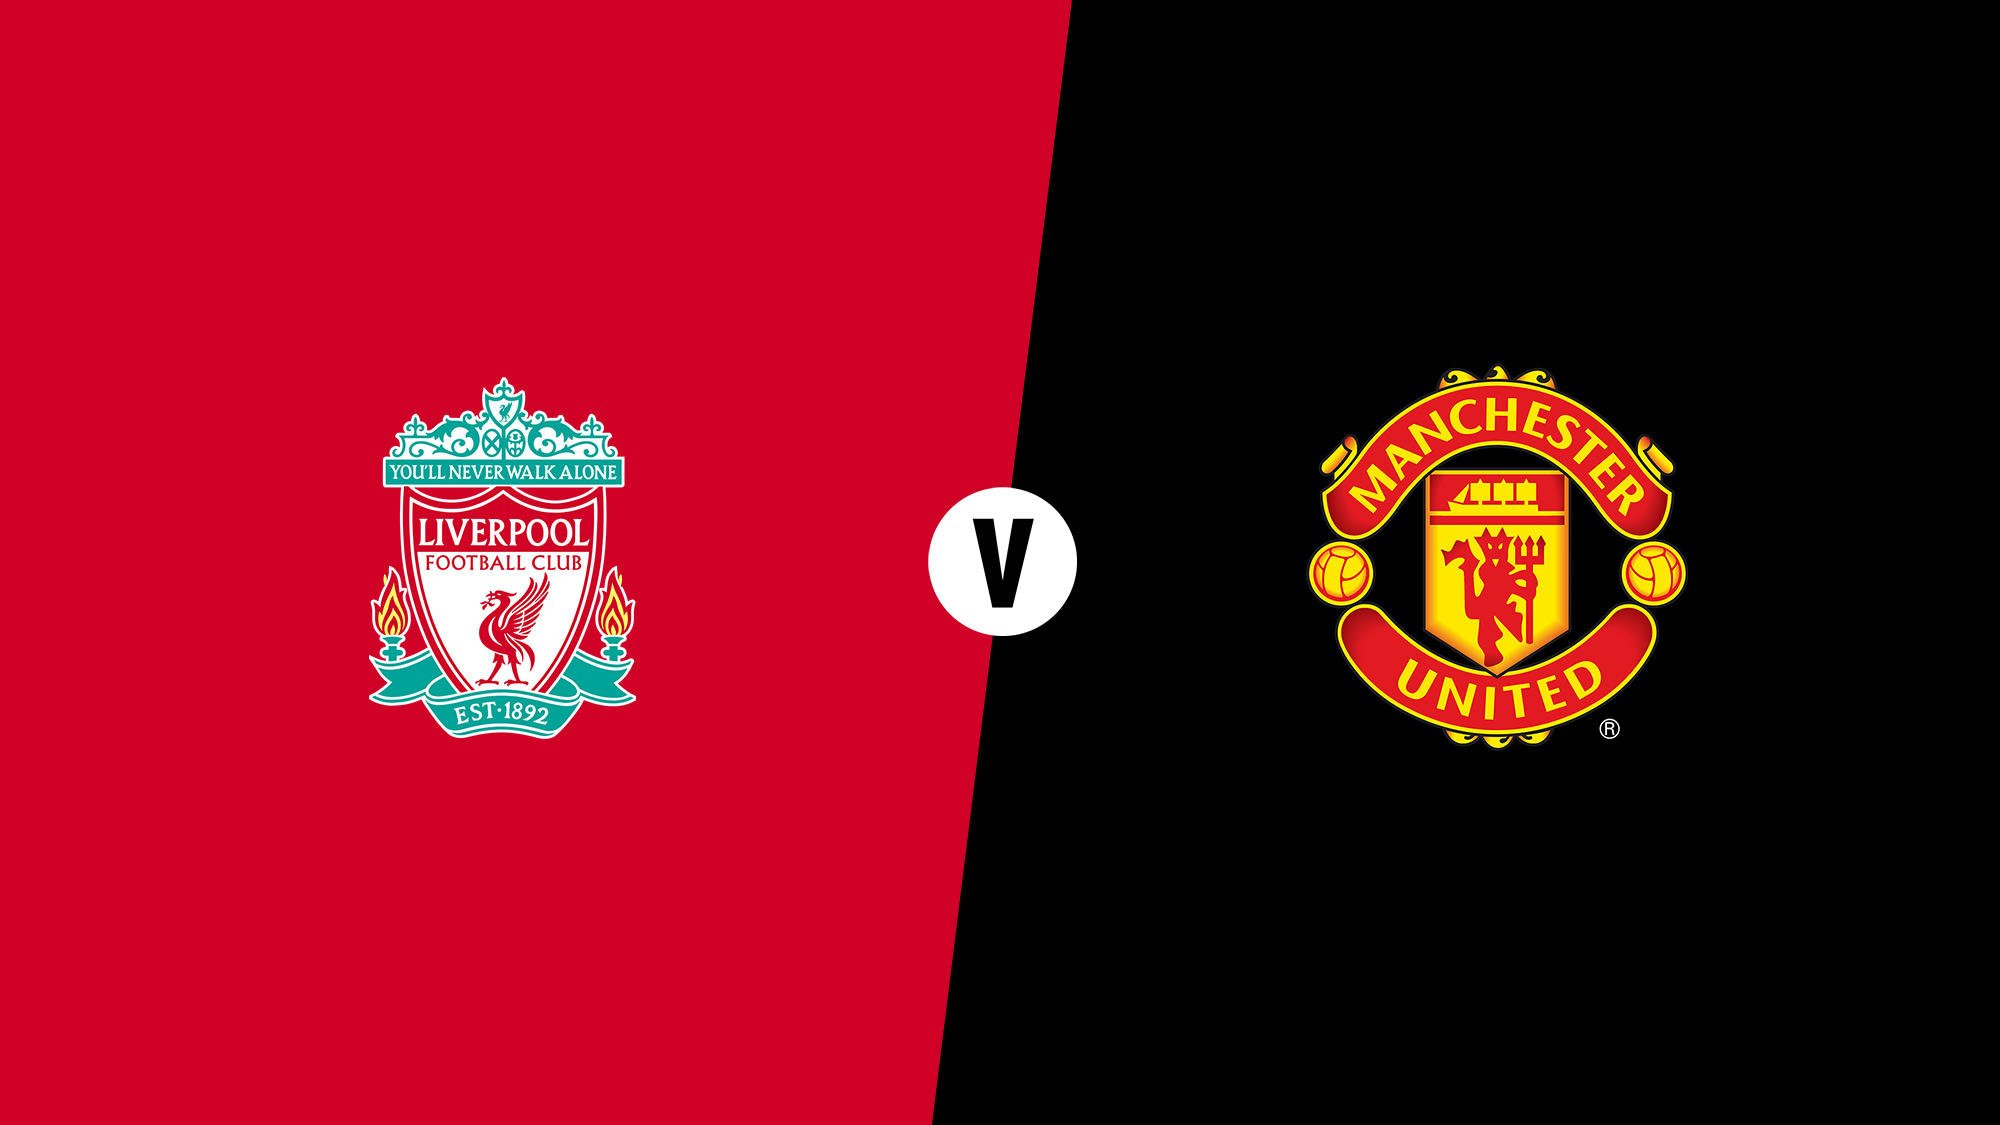 All the information you need for Saturday's clash with Liverpool is in our preview: https://t.co/jfTAZnszAt https://t.co/0MMmcVzlco